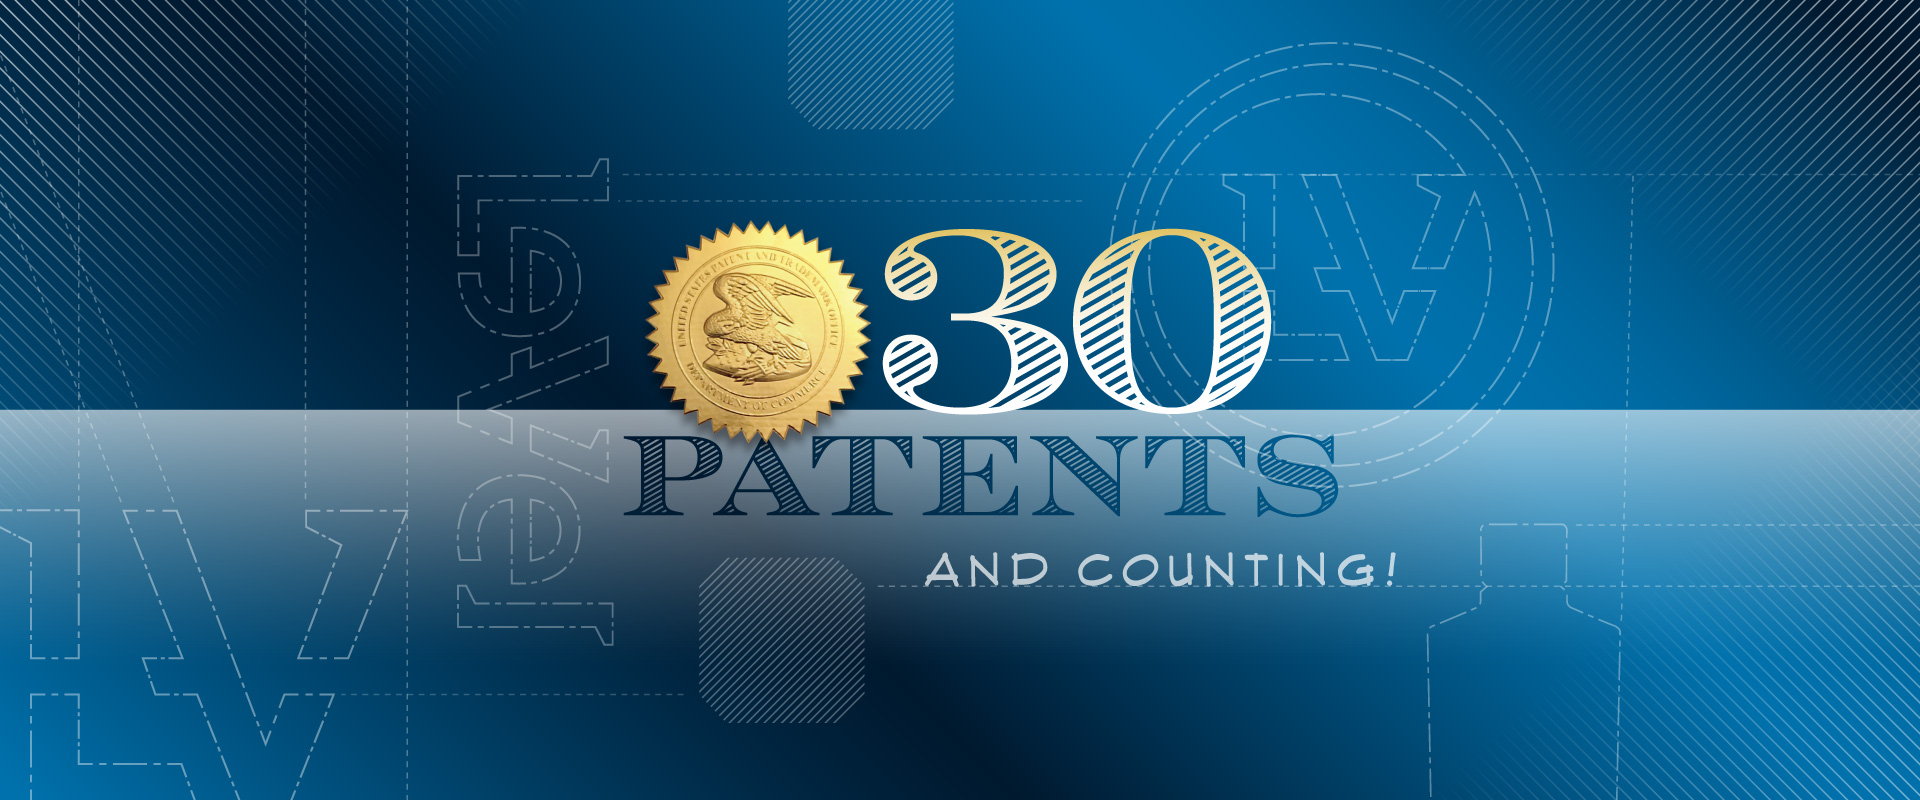 25 Patents and Counting!